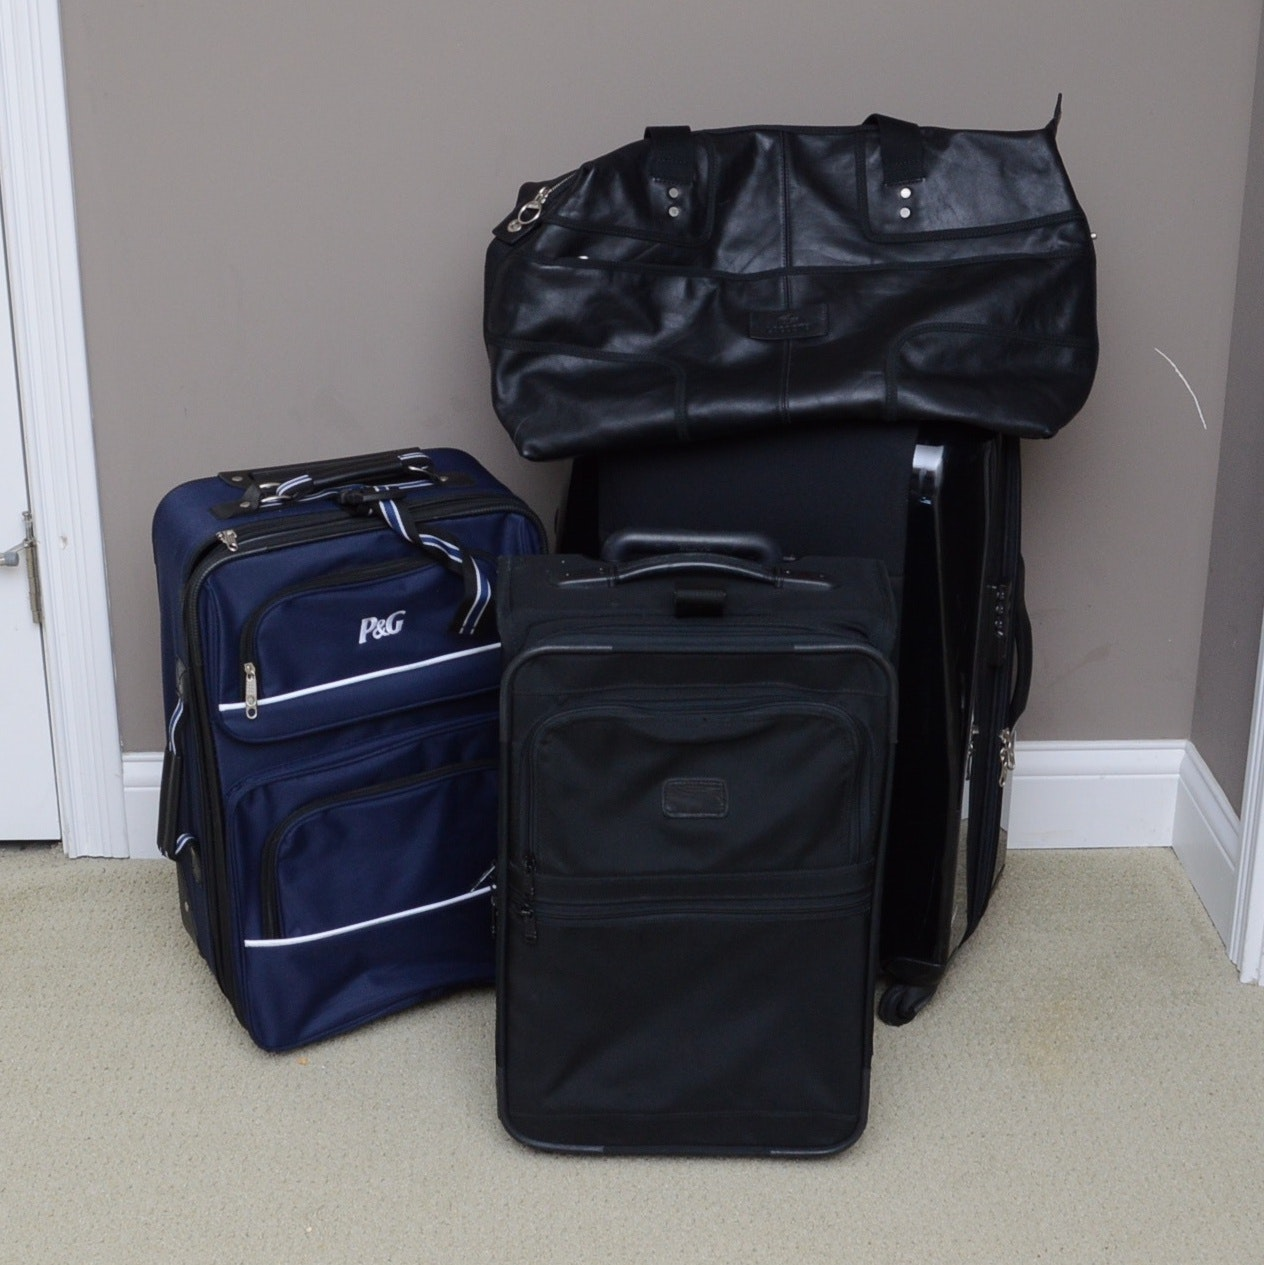 Luggage Grouping